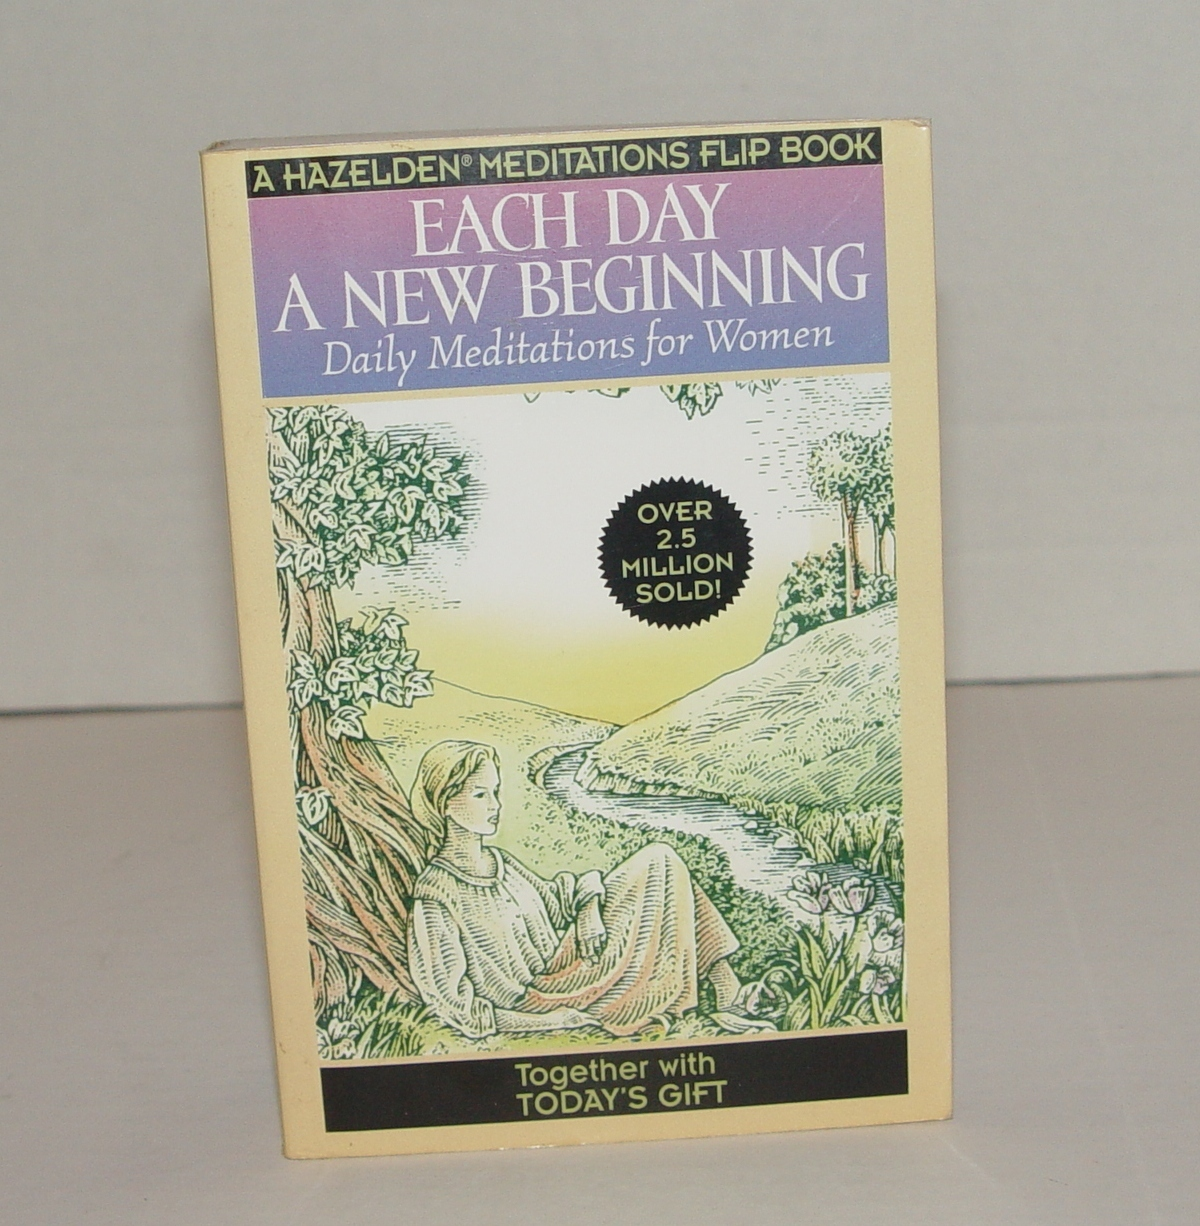 Primary image for Each Day a New Beginning by Hazelden Publishing : A Special Ed of Two Books NEW